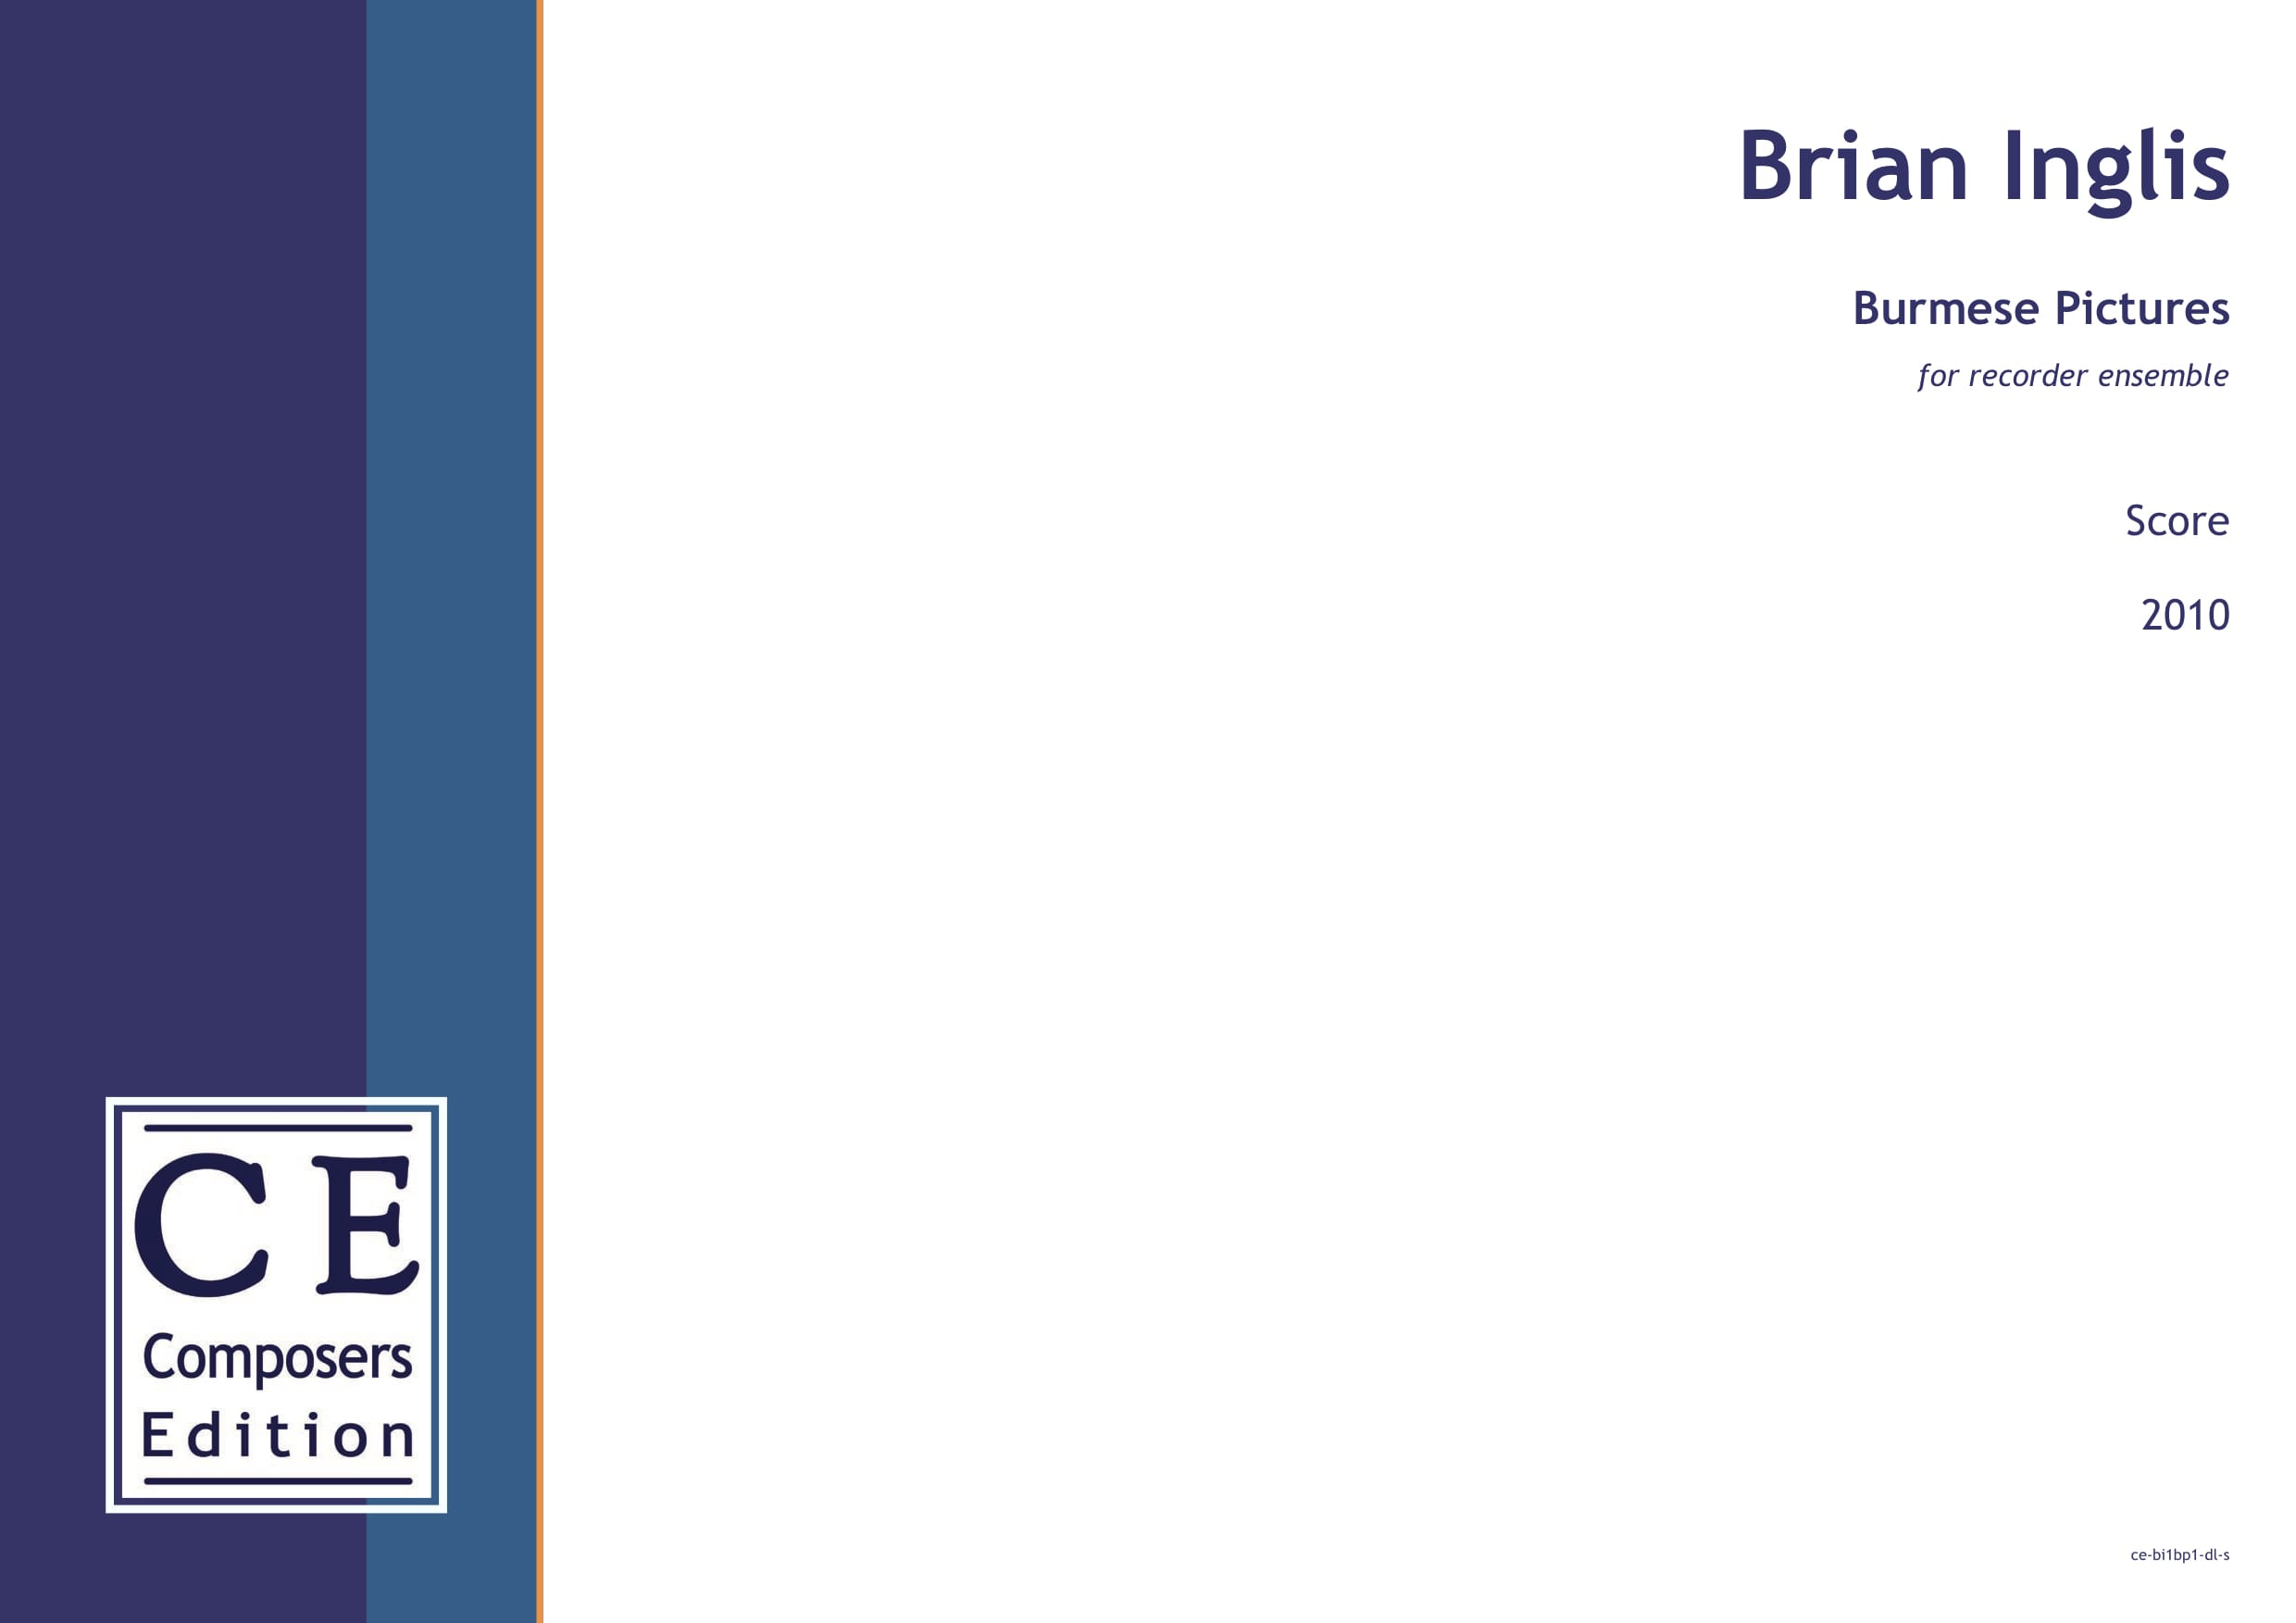 Brian Inglis: Burmese Pictures for recorder ensemble